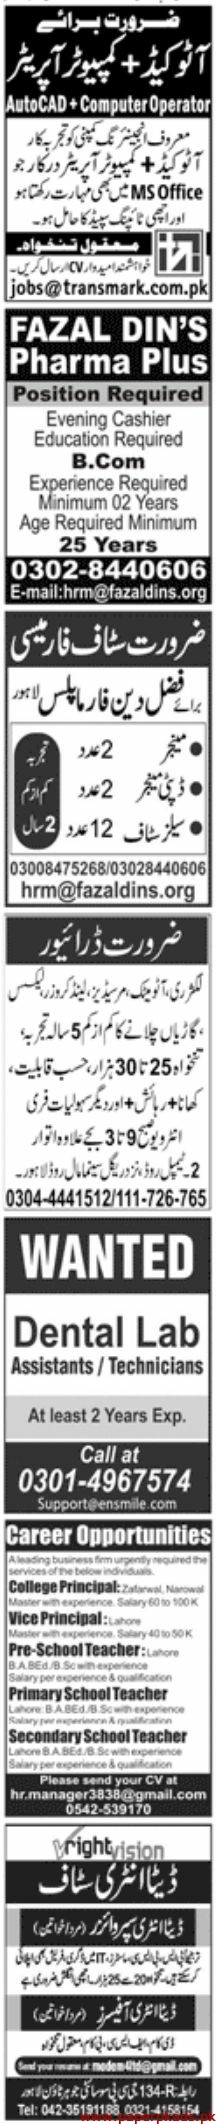 Jang Newspaper Jobs Paper Pk Jobs 24 March 2020 Latest